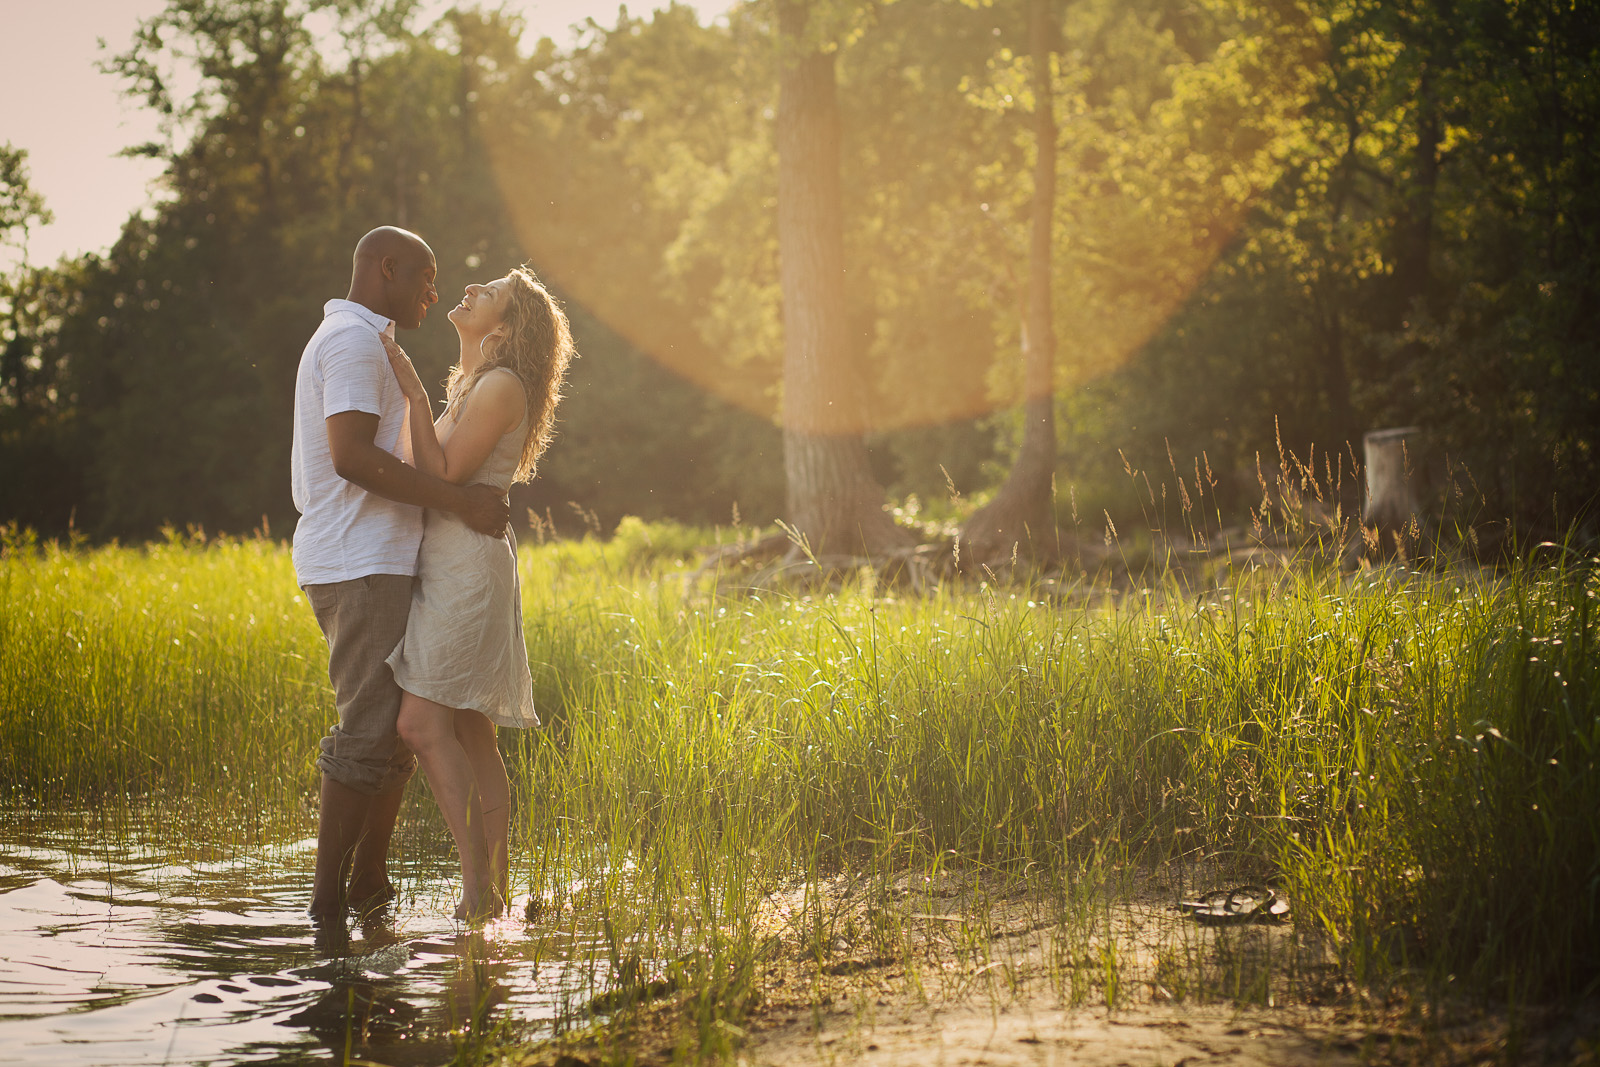 bianca-morello-photography-montreal-couple-engagement-wedding-9.jpg